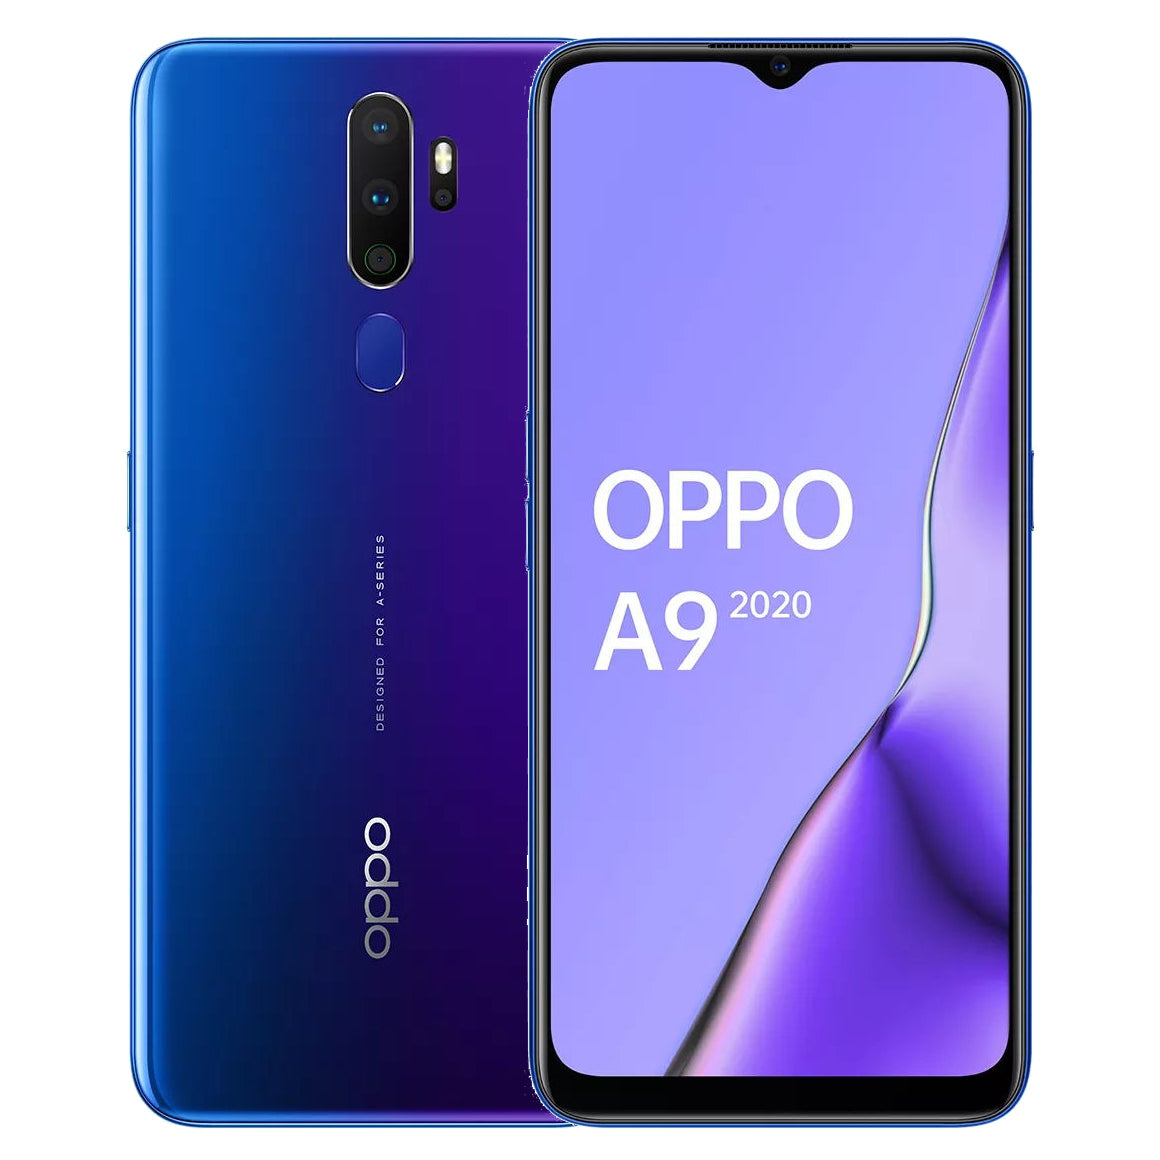 OPPO A9 2020 Global Version 6.5 inch HD+ 5000mAh Android 9.0 48MP Quad Rear Cameras 8GB 128GB Snapdragon 665 Octa Core 4G Smartphone